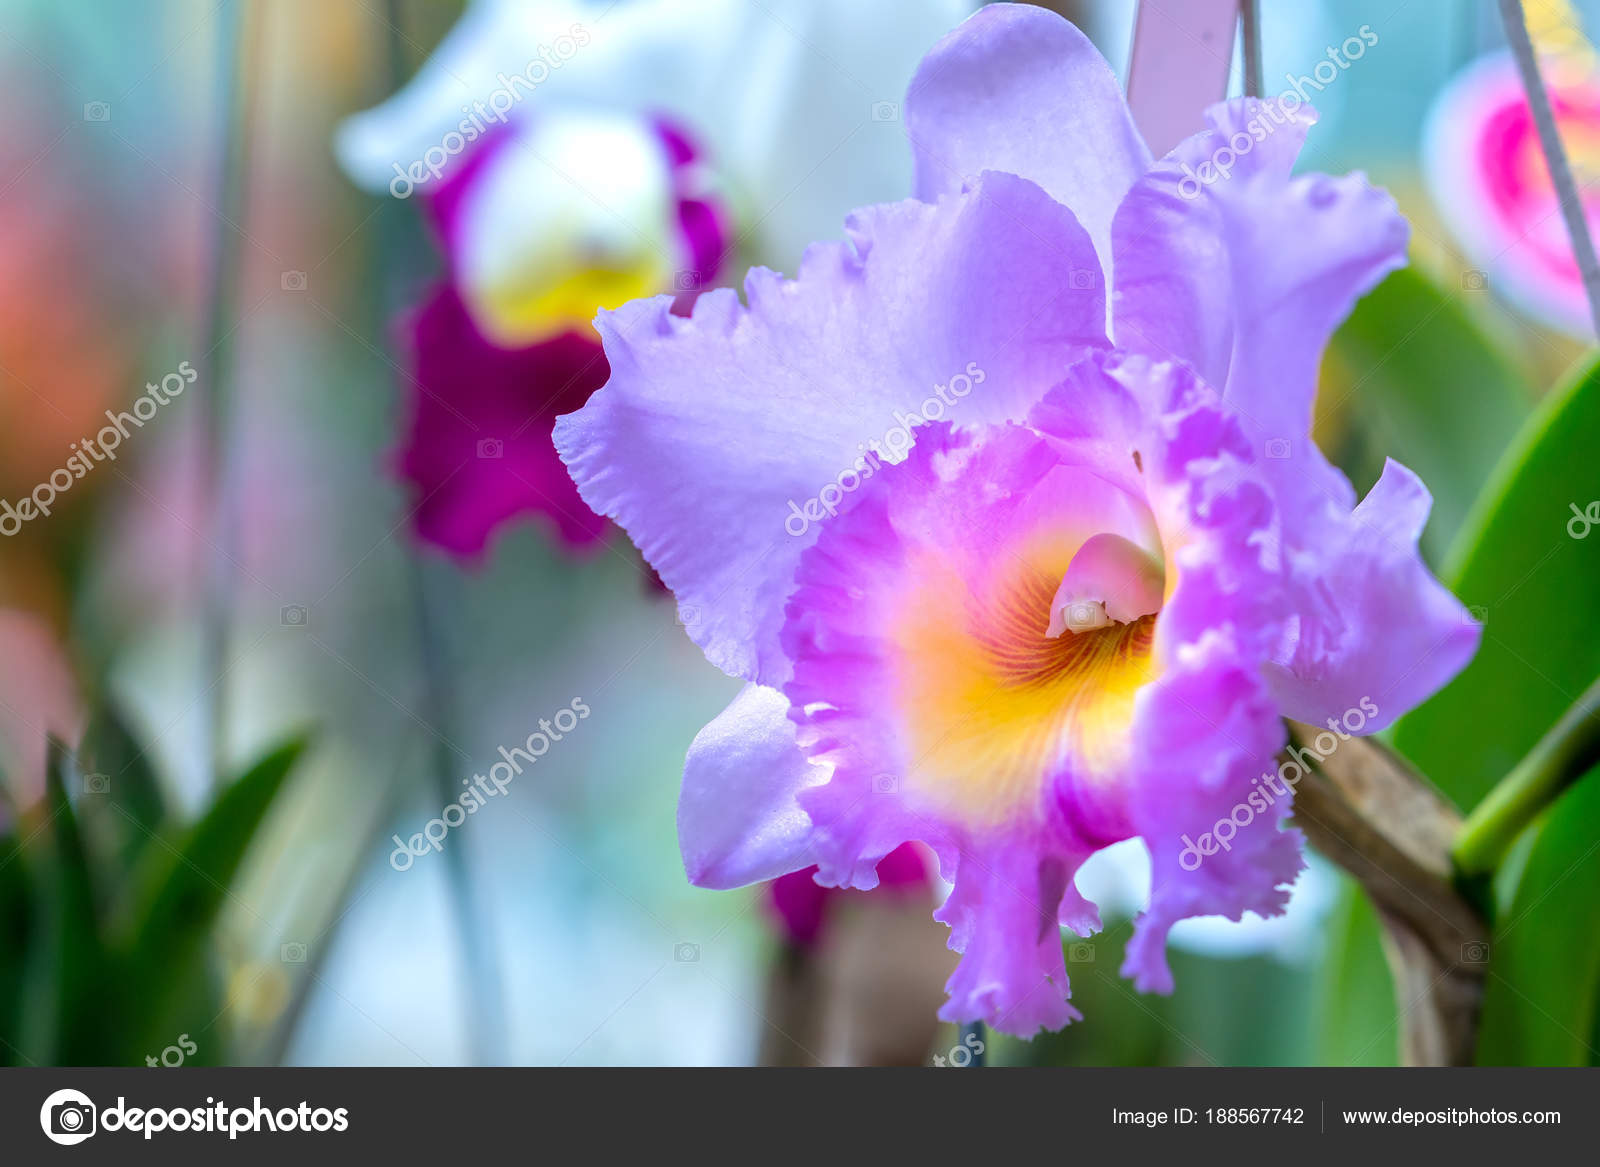 Cattleya Flowers Bloom Spring Adorn Beauty Nature Most Beautiful